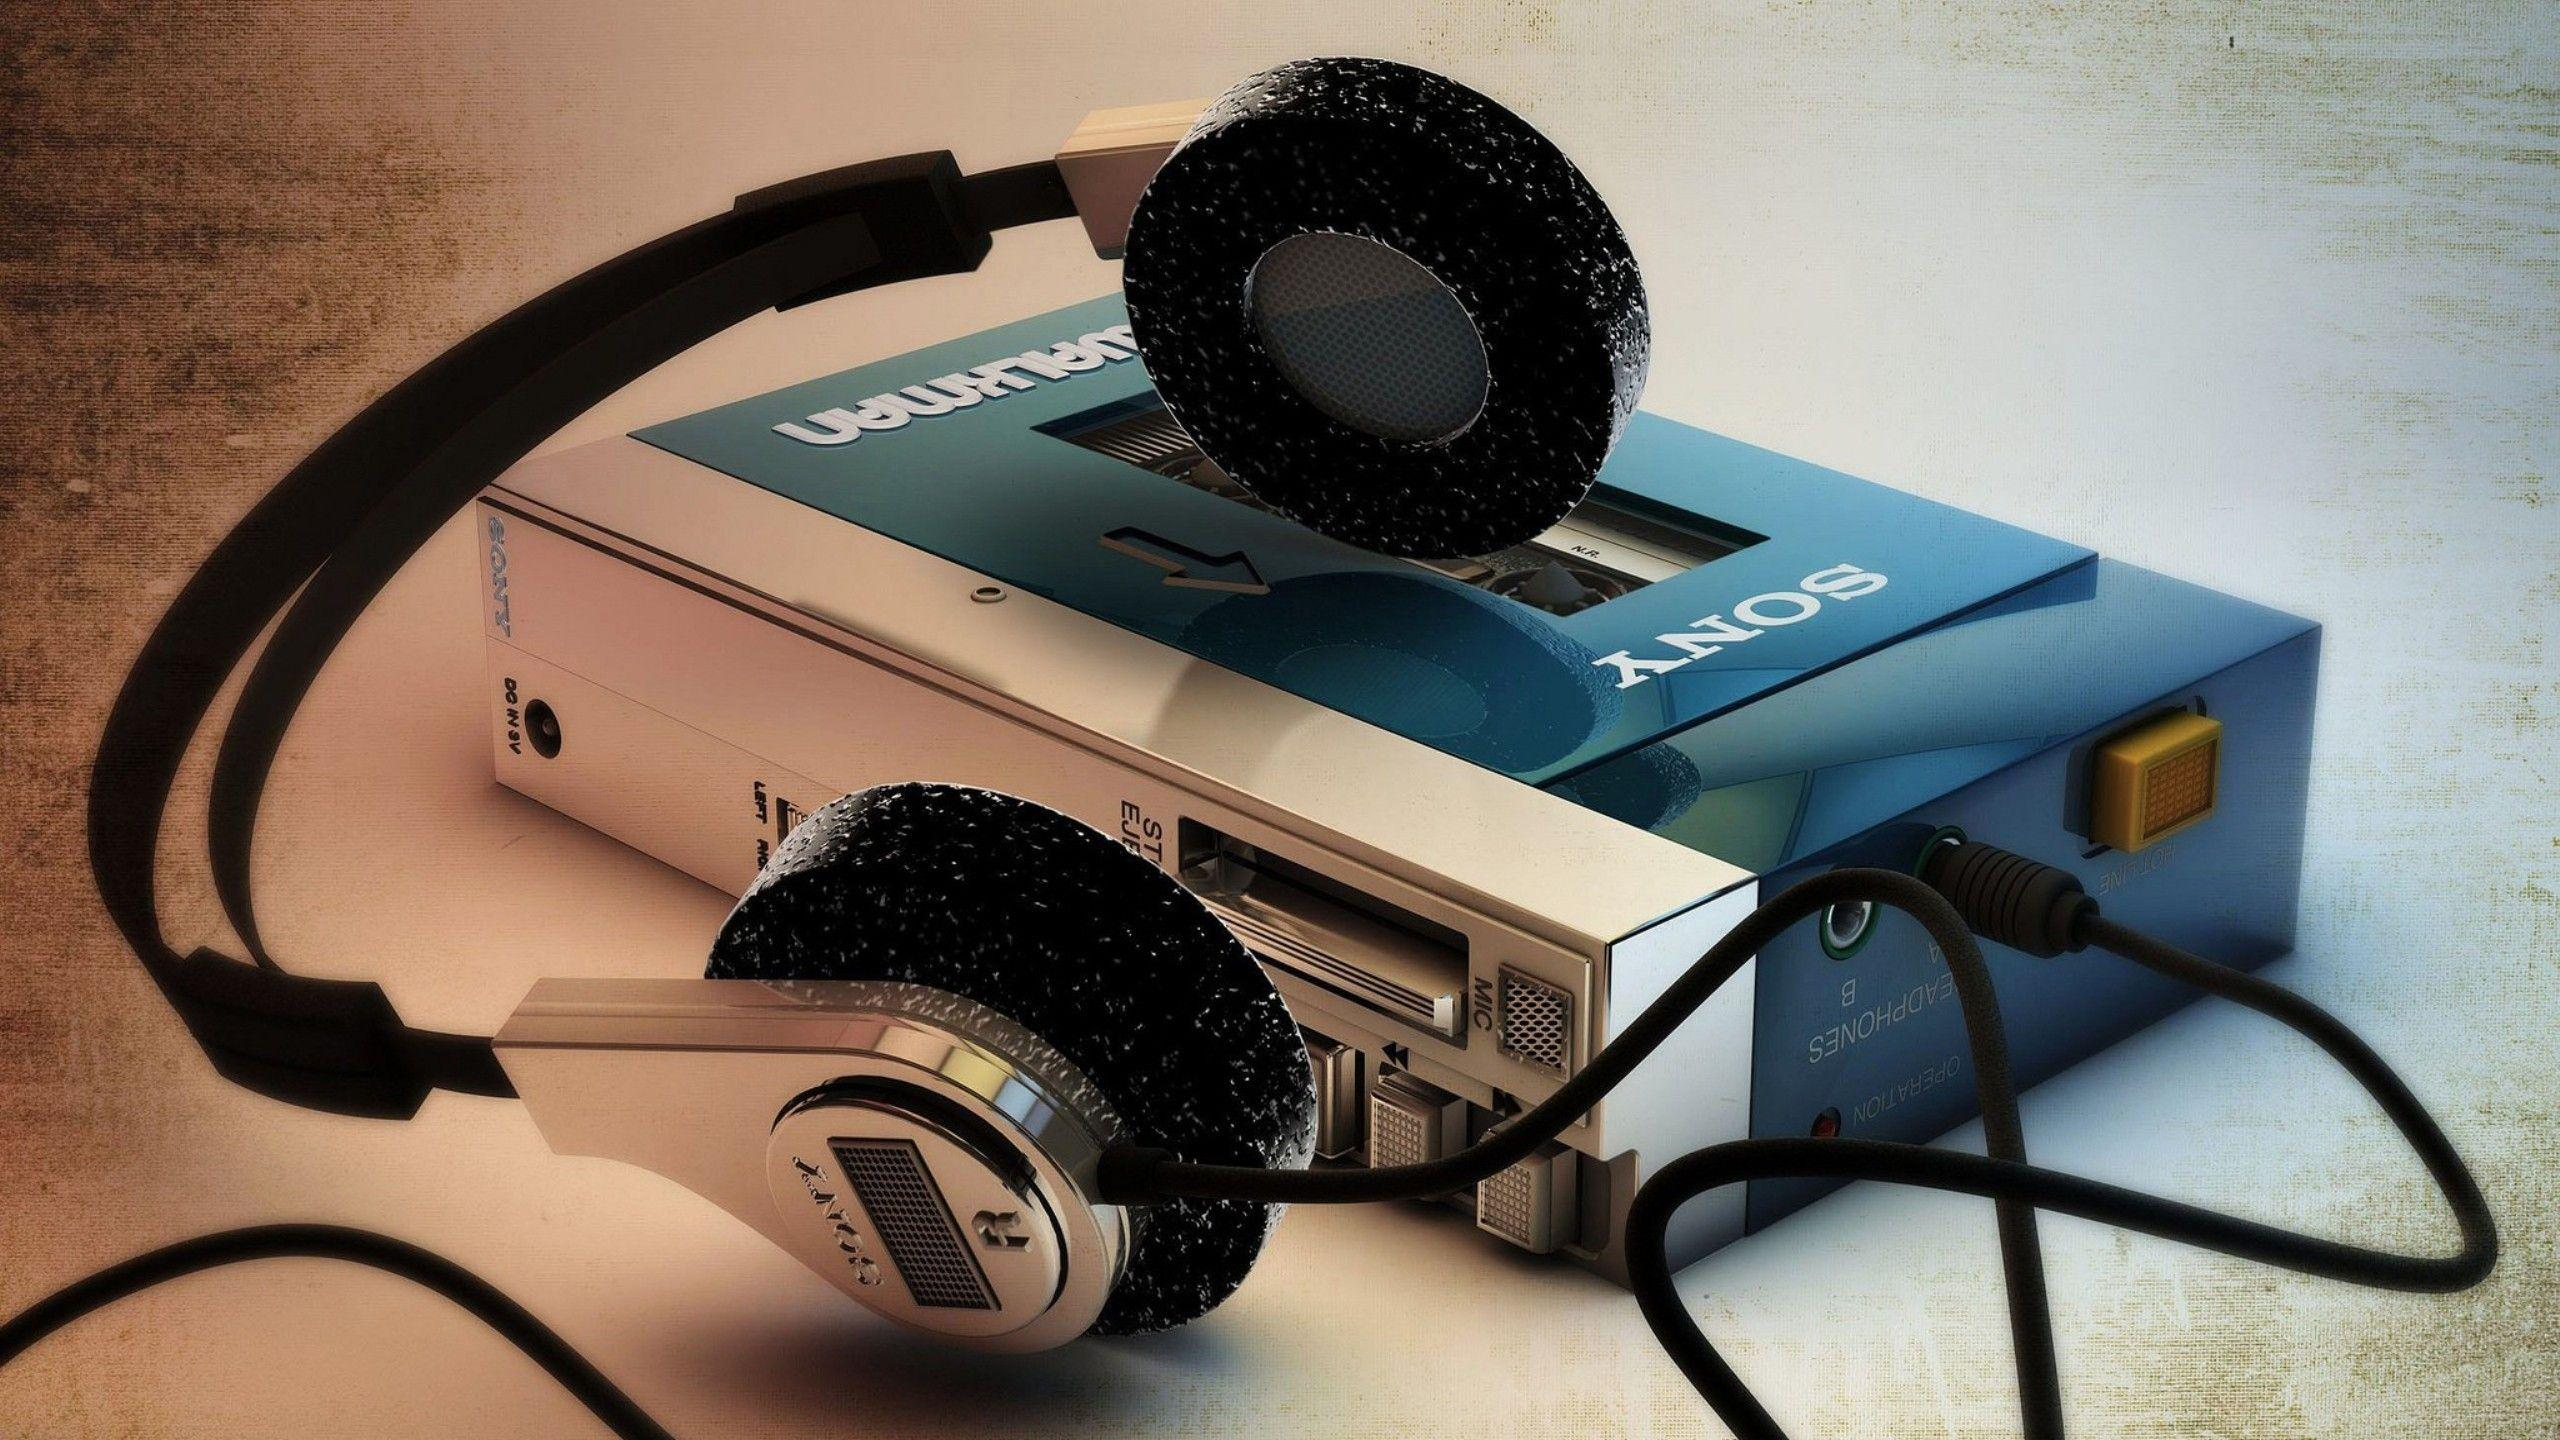 Walkman Wallpapers - Wallpaper Cave